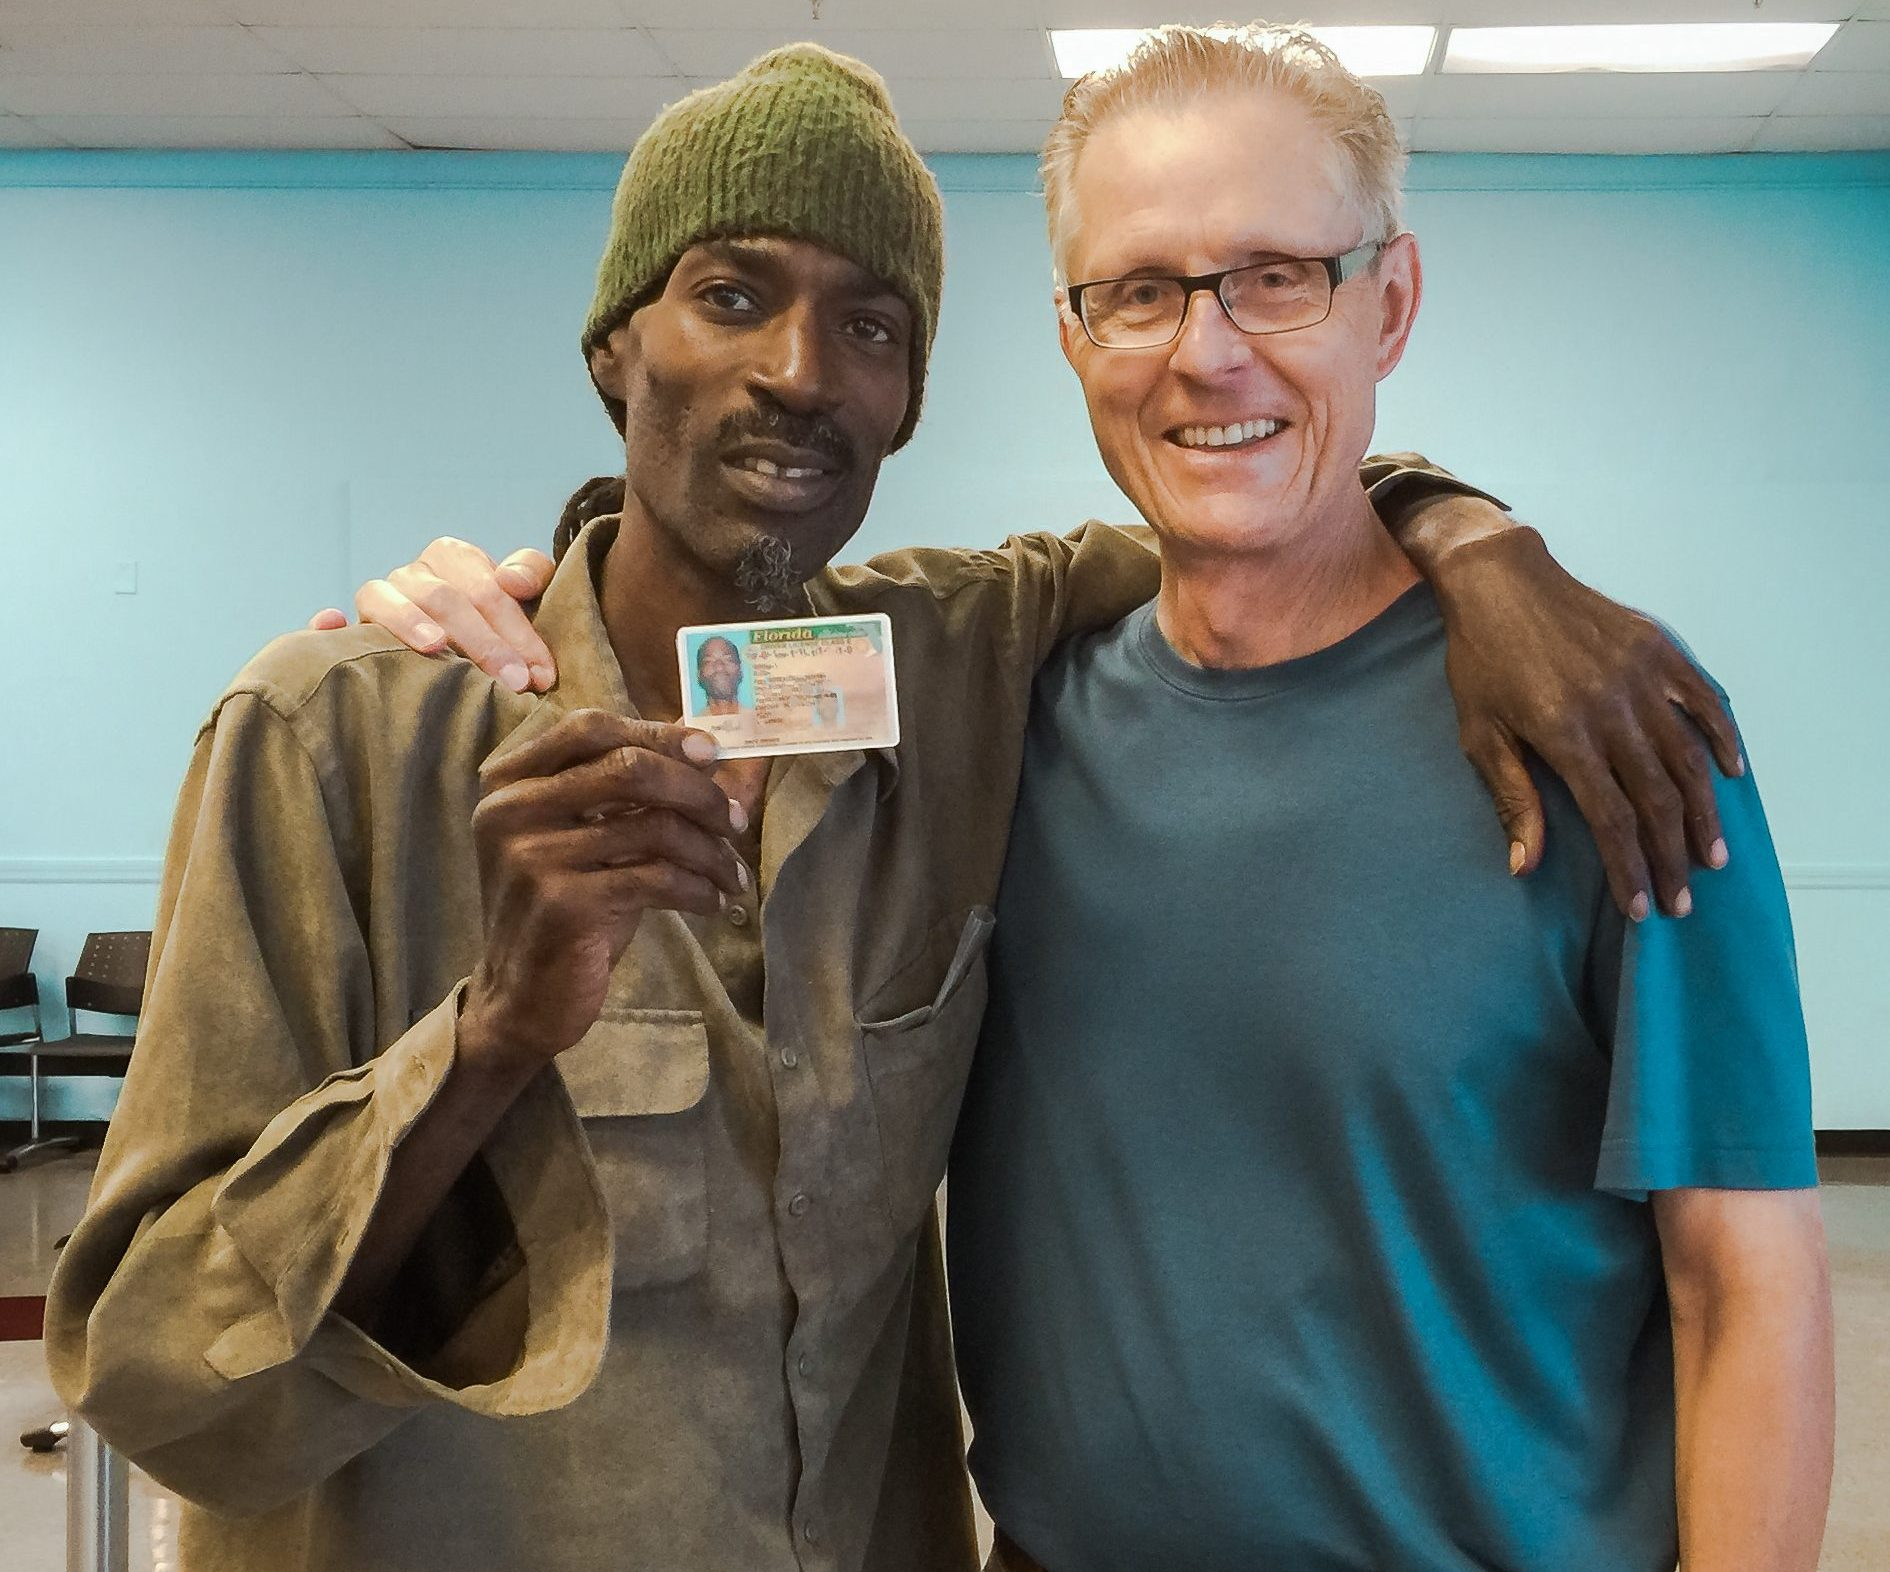 IDignity client Donell celebrates getting his new ID with IDignity Board Member Nick